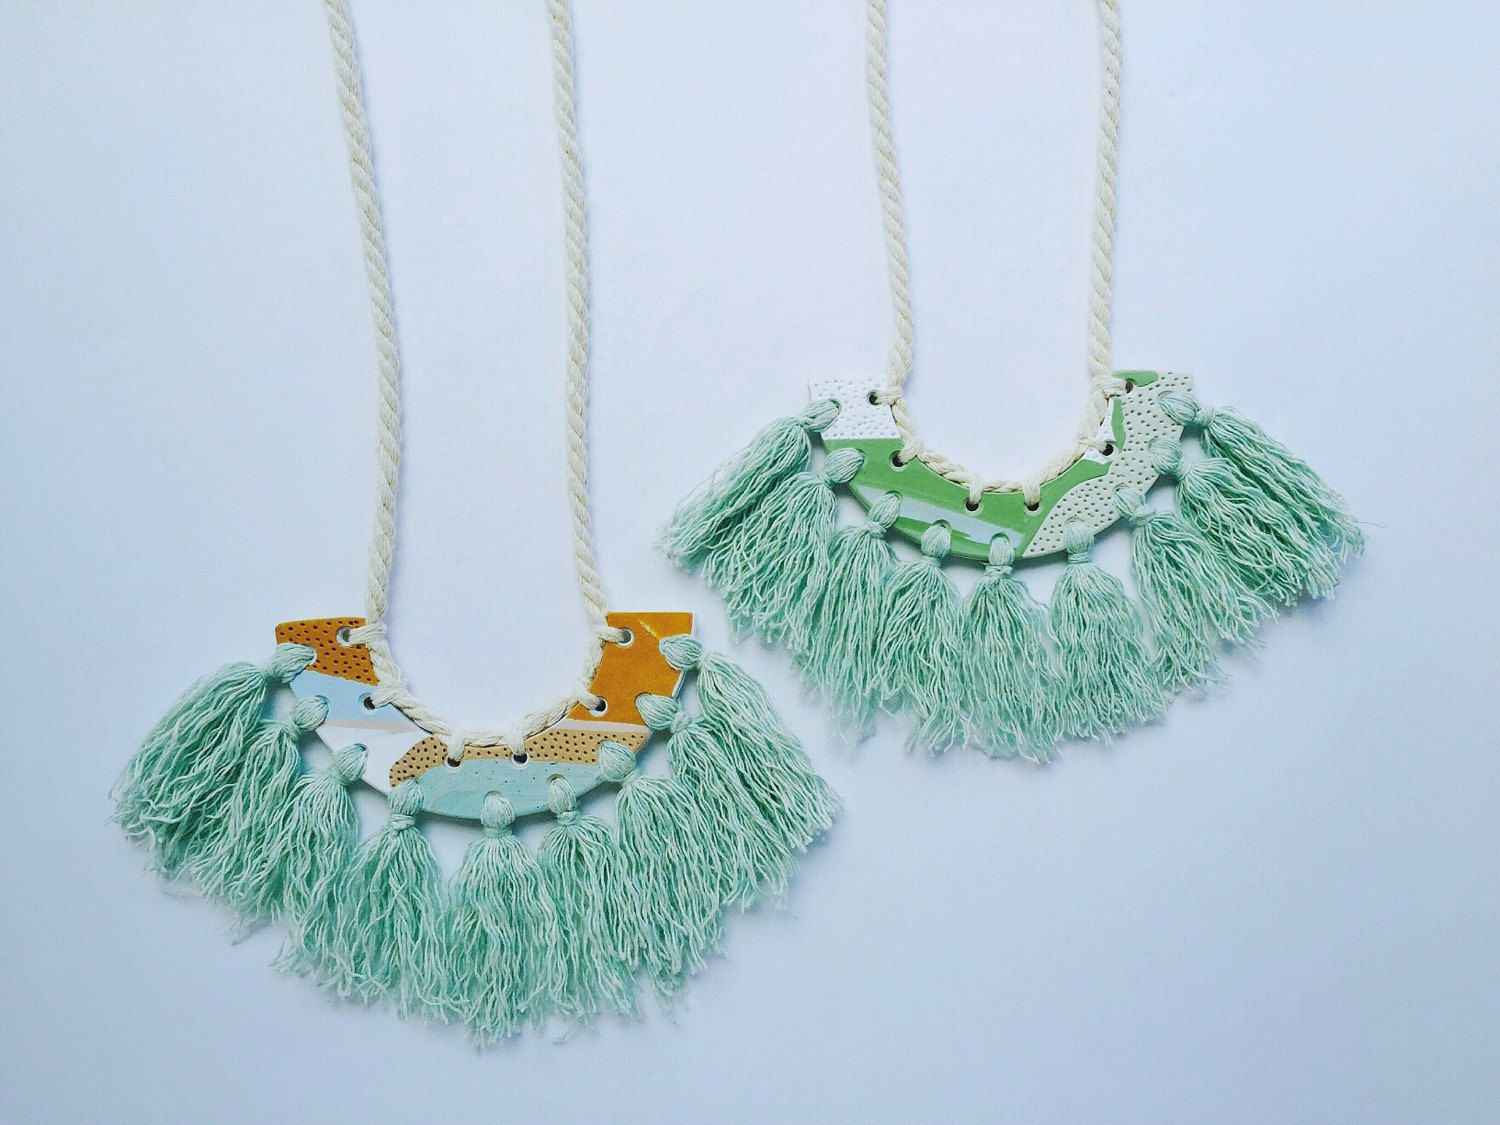 Kelaoke - Reversible Handmade Polymer Clay and Rope Necklaces